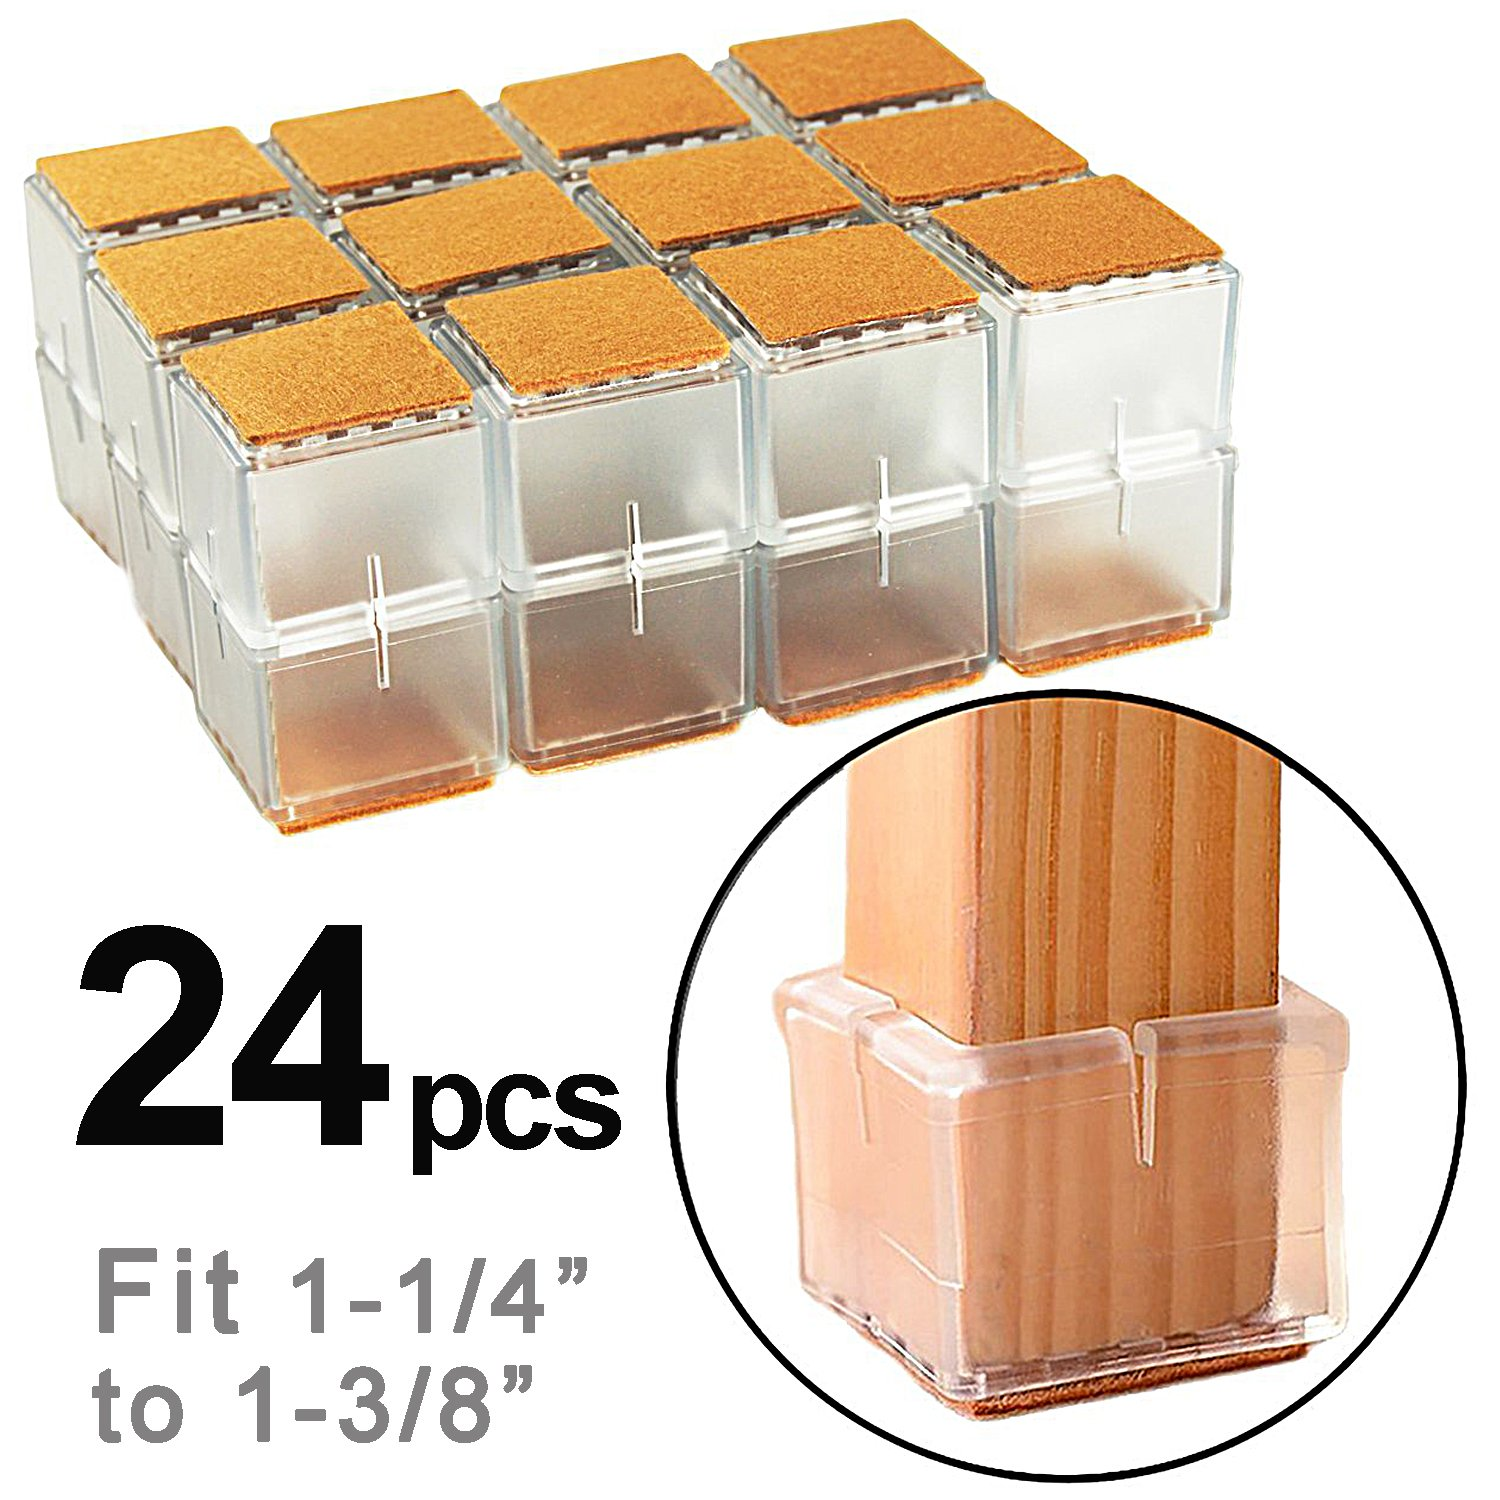 LimBridge Chair Leg Wood Floor Protectors, Chair Feet Glides Furniture Carpet Saver, Silicone Caps with Felt Pads #8, Square Length 1-1/4'' to 1-3/8'' (3.2cm-3.5cm) 24 Pack